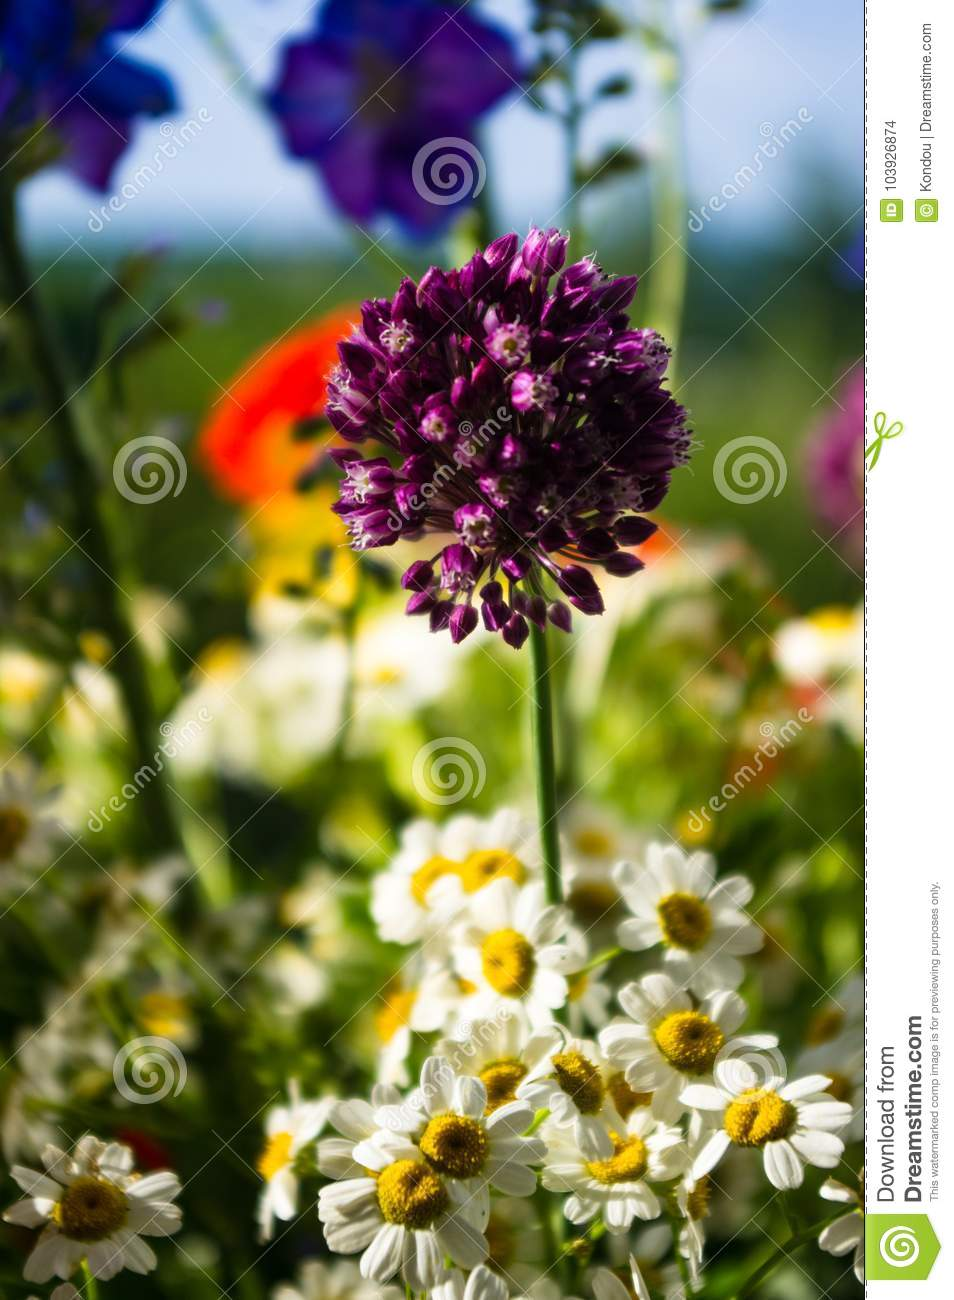 A bouquet of bright spring flowers of various types stock photo download a bouquet of bright spring flowers of various types stock photo image of birthday izmirmasajfo